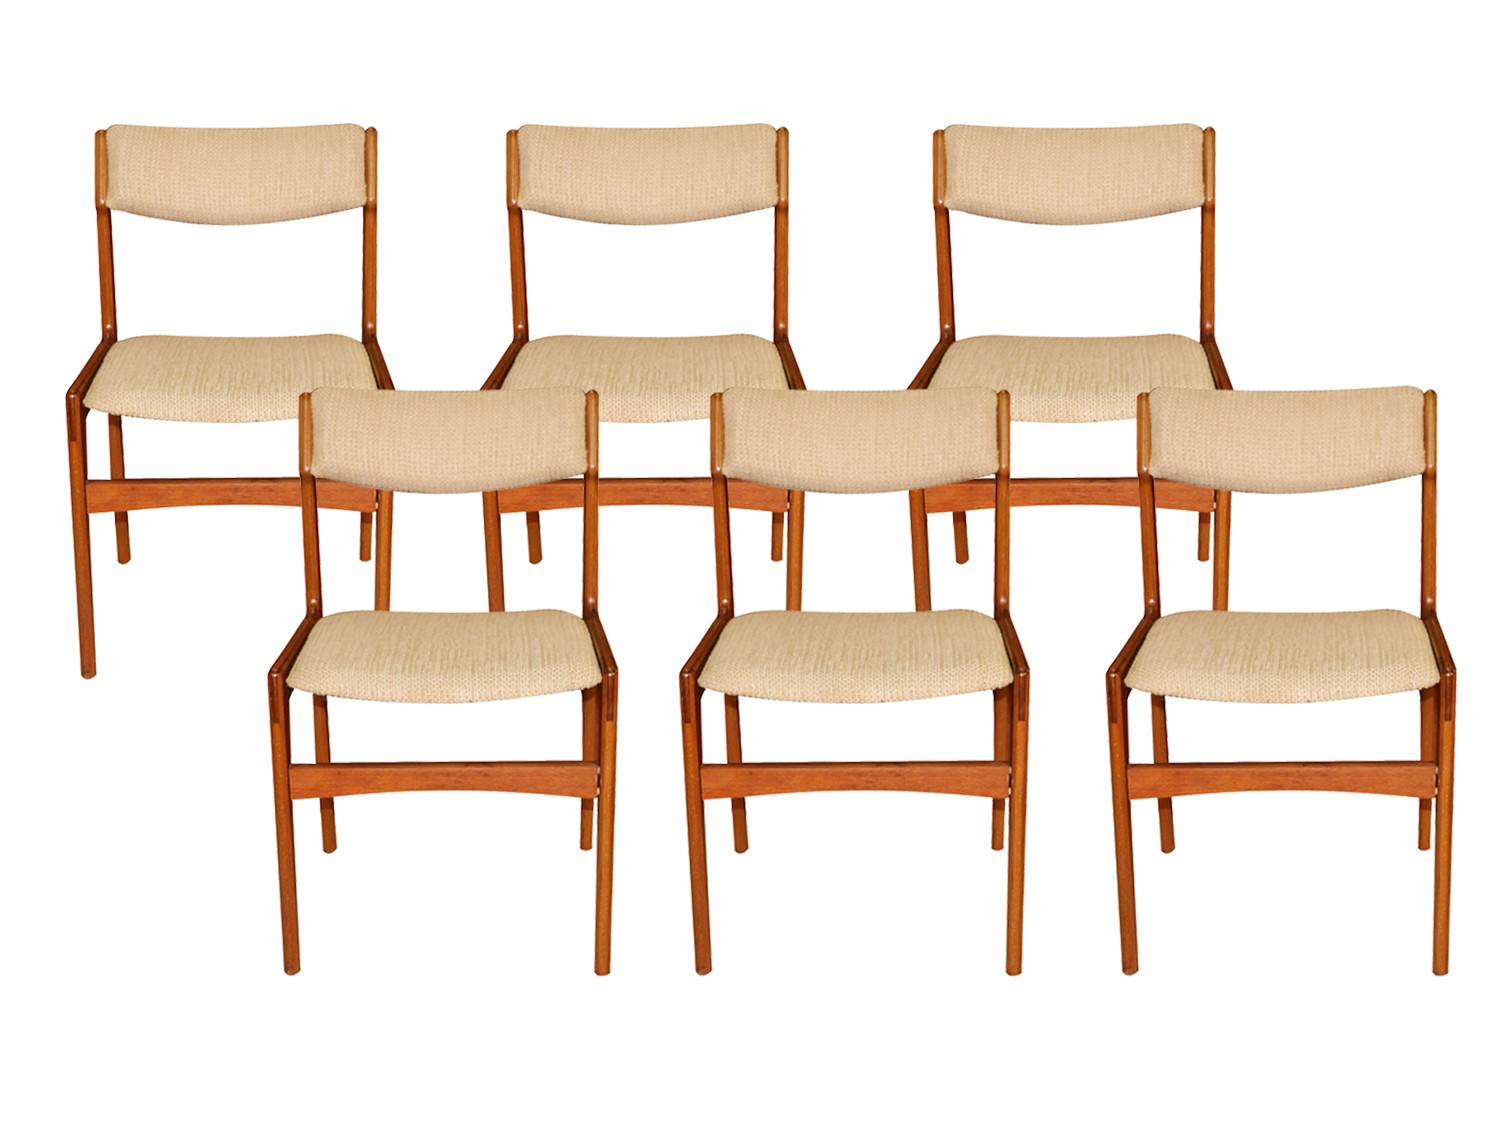 Magnificent Mid Century Danish Teak Dining Chairs Bralicious Painted Fabric Chair Ideas Braliciousco